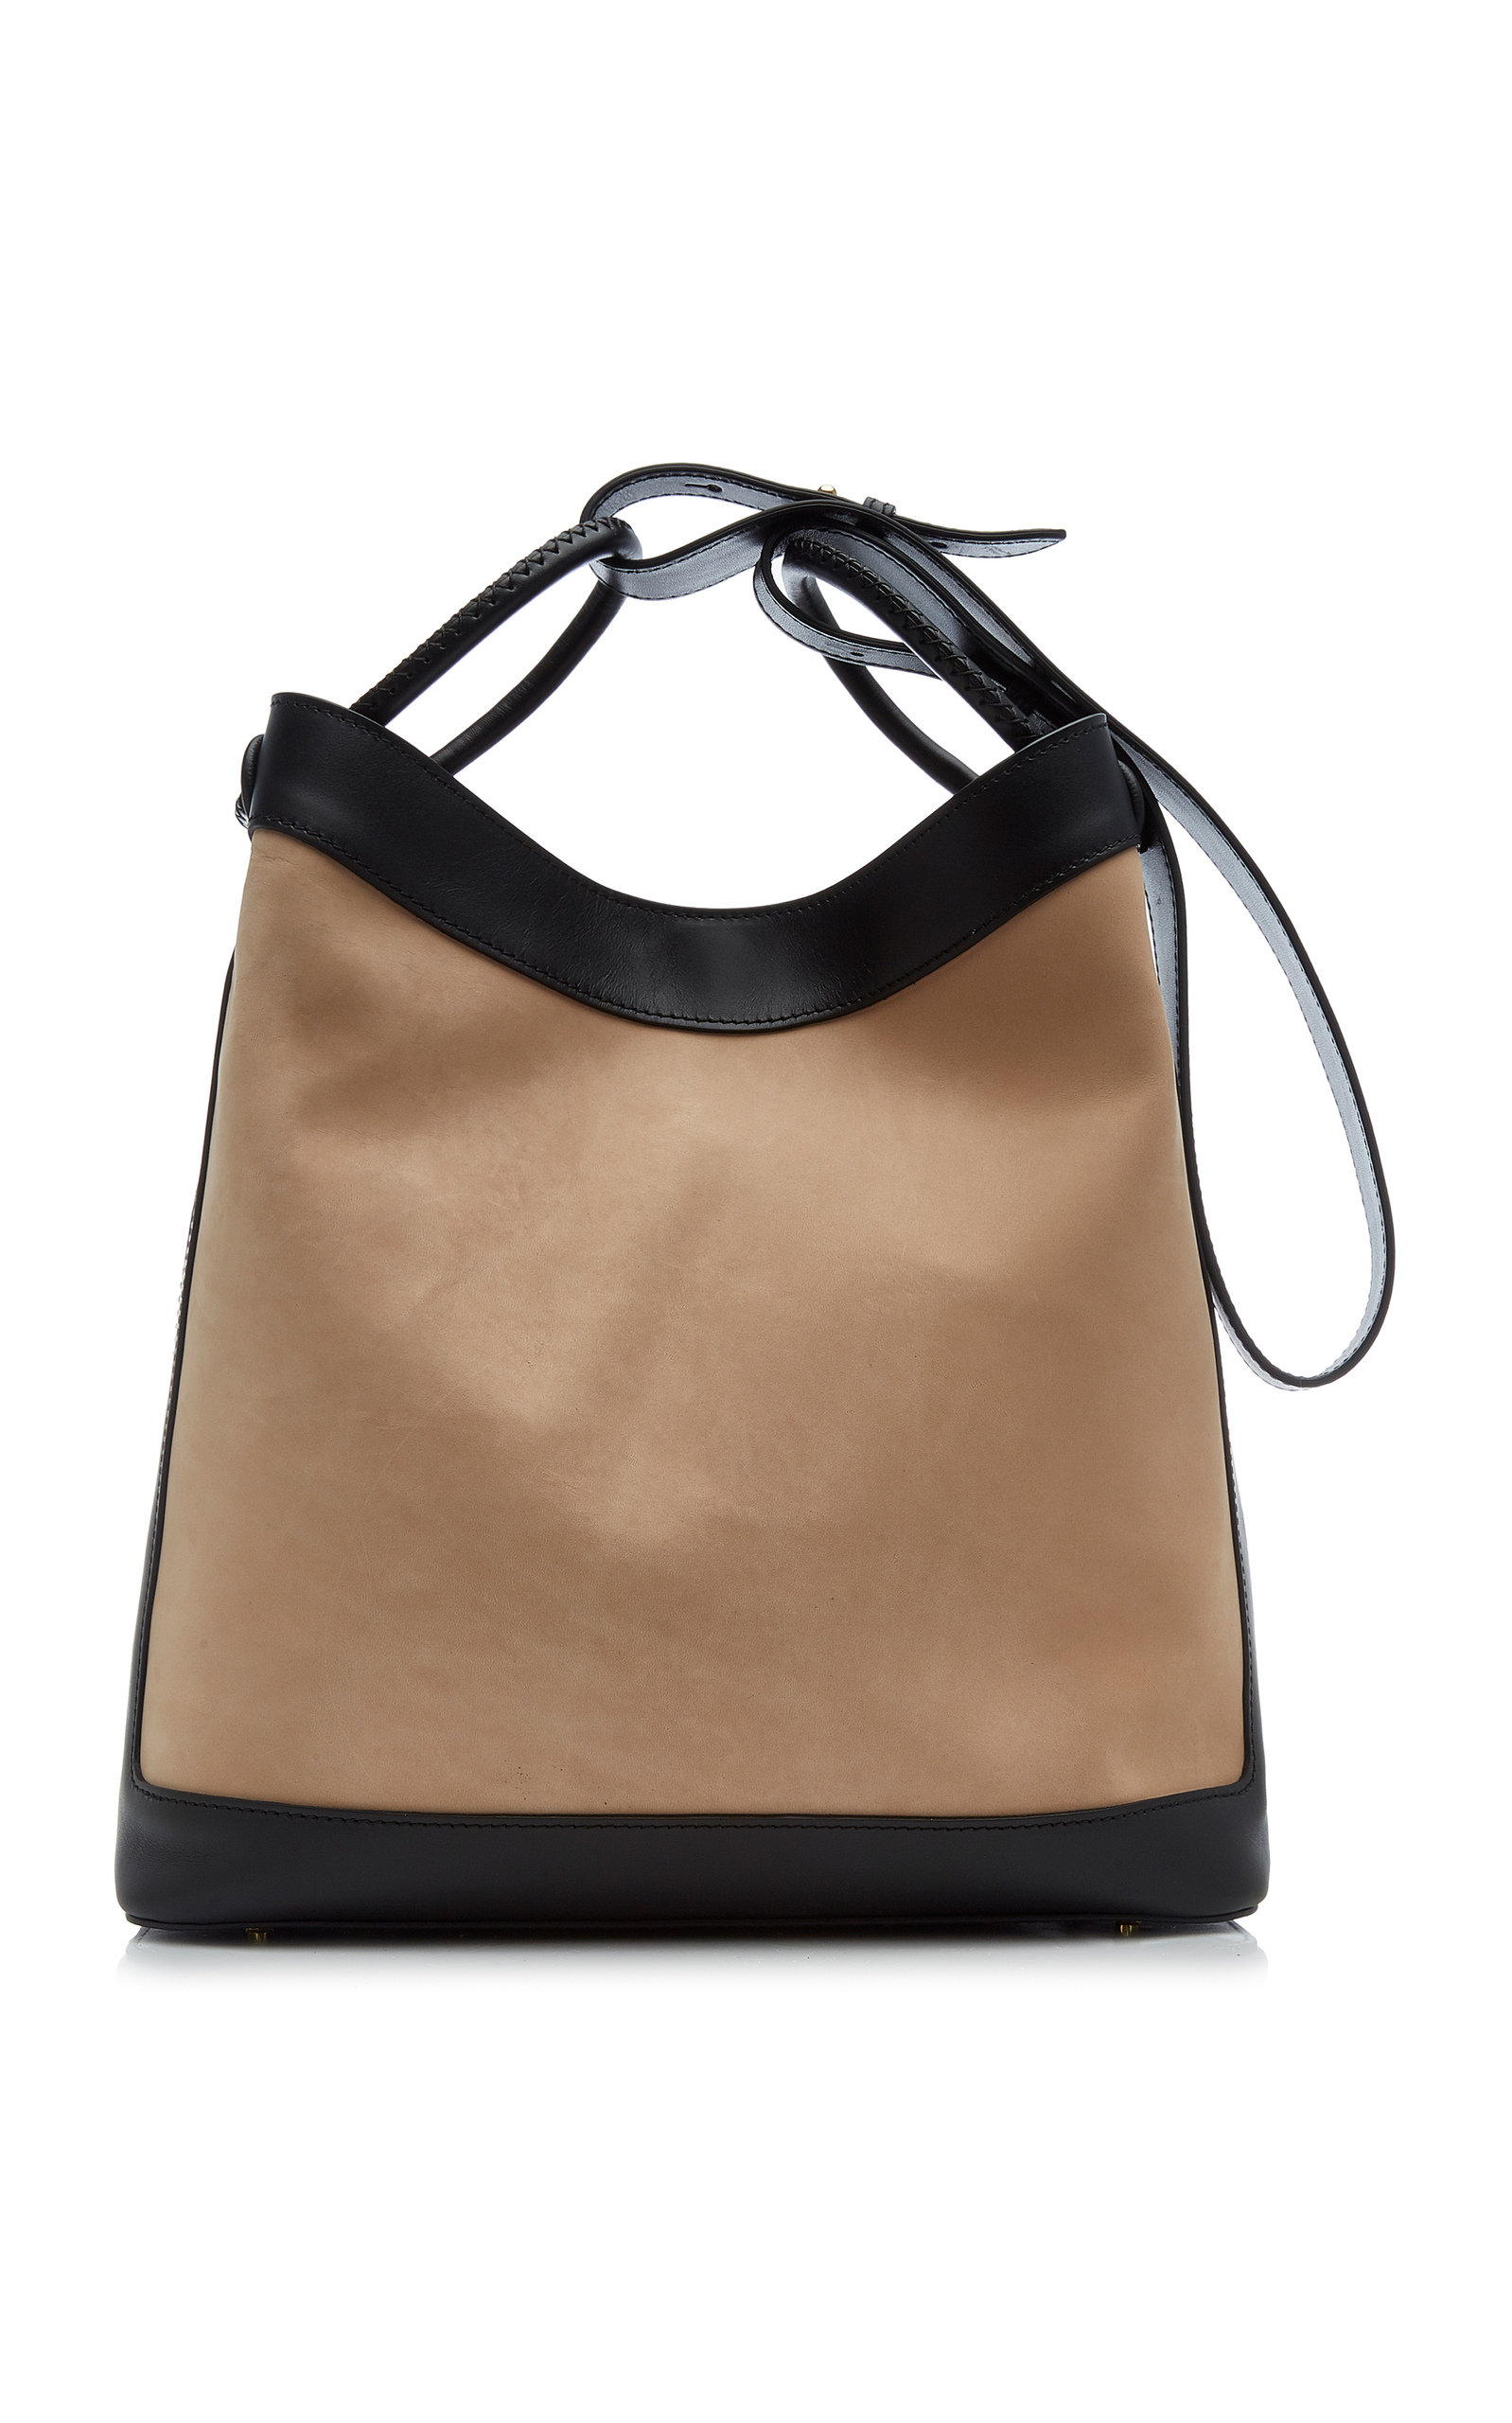 Elleme Vosges Leather Shoulder Bag In Brown